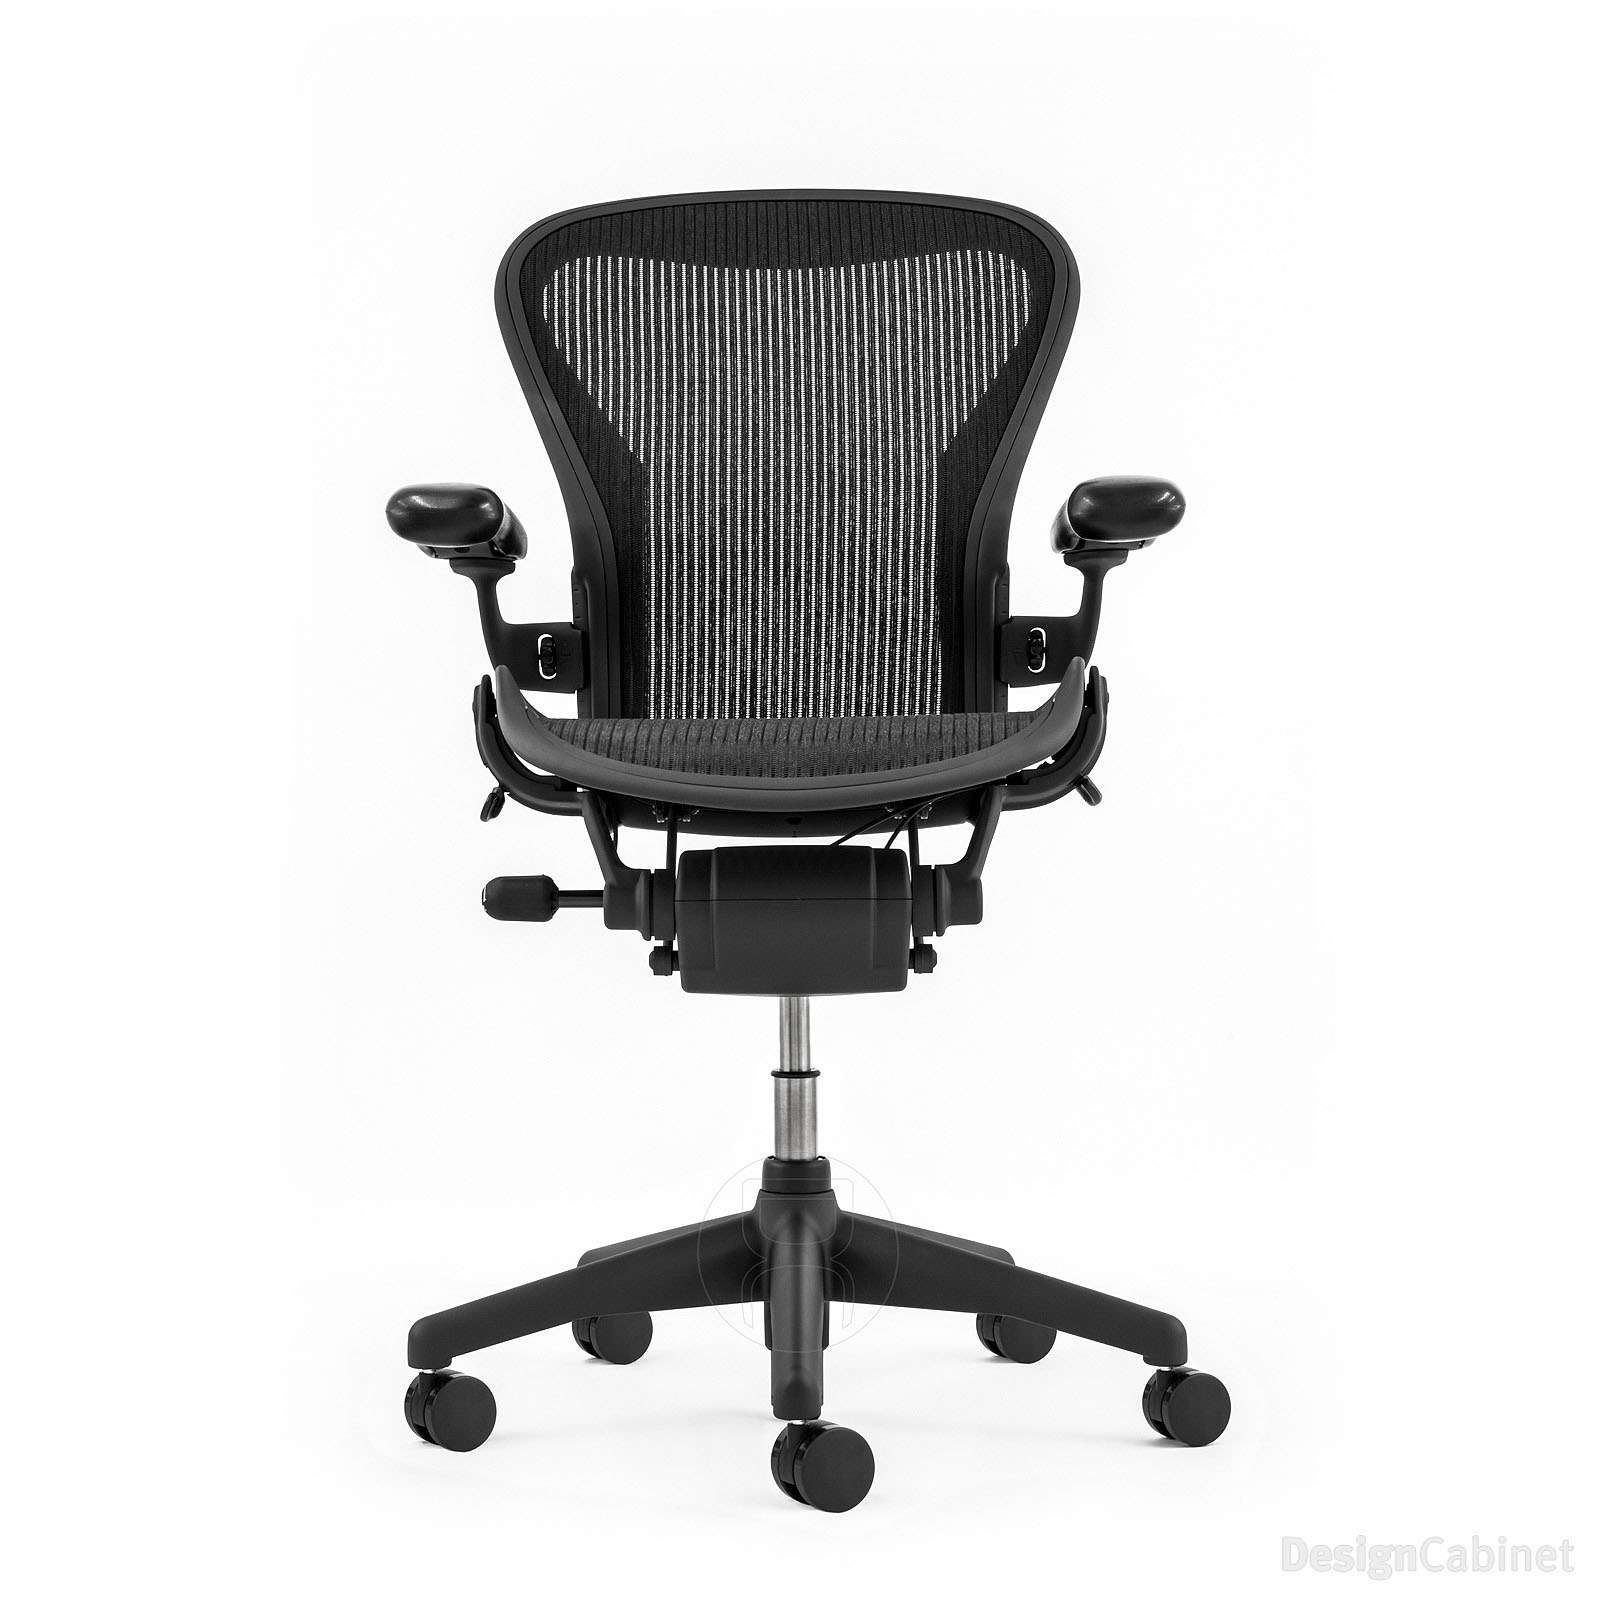 new herman miller aeron chair. Black Bedroom Furniture Sets. Home Design Ideas